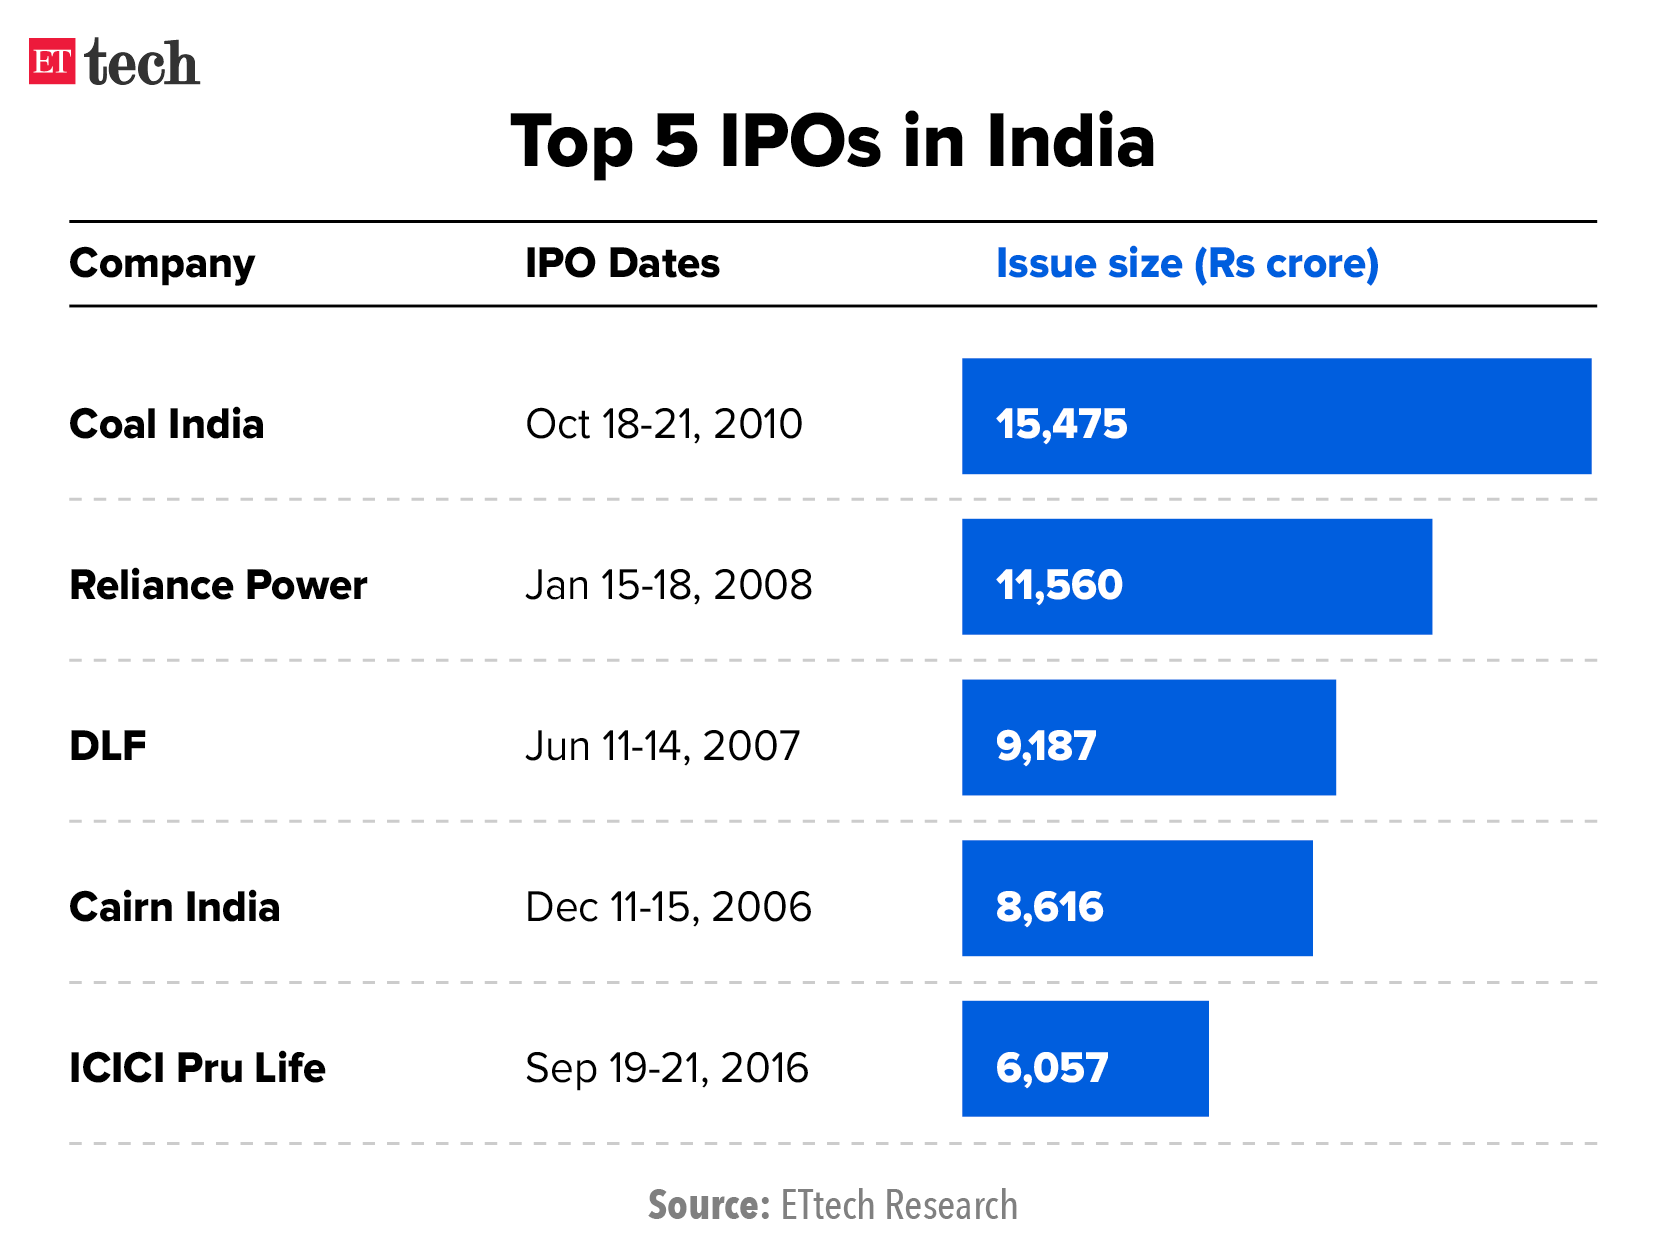 Top 5 IPOs in India